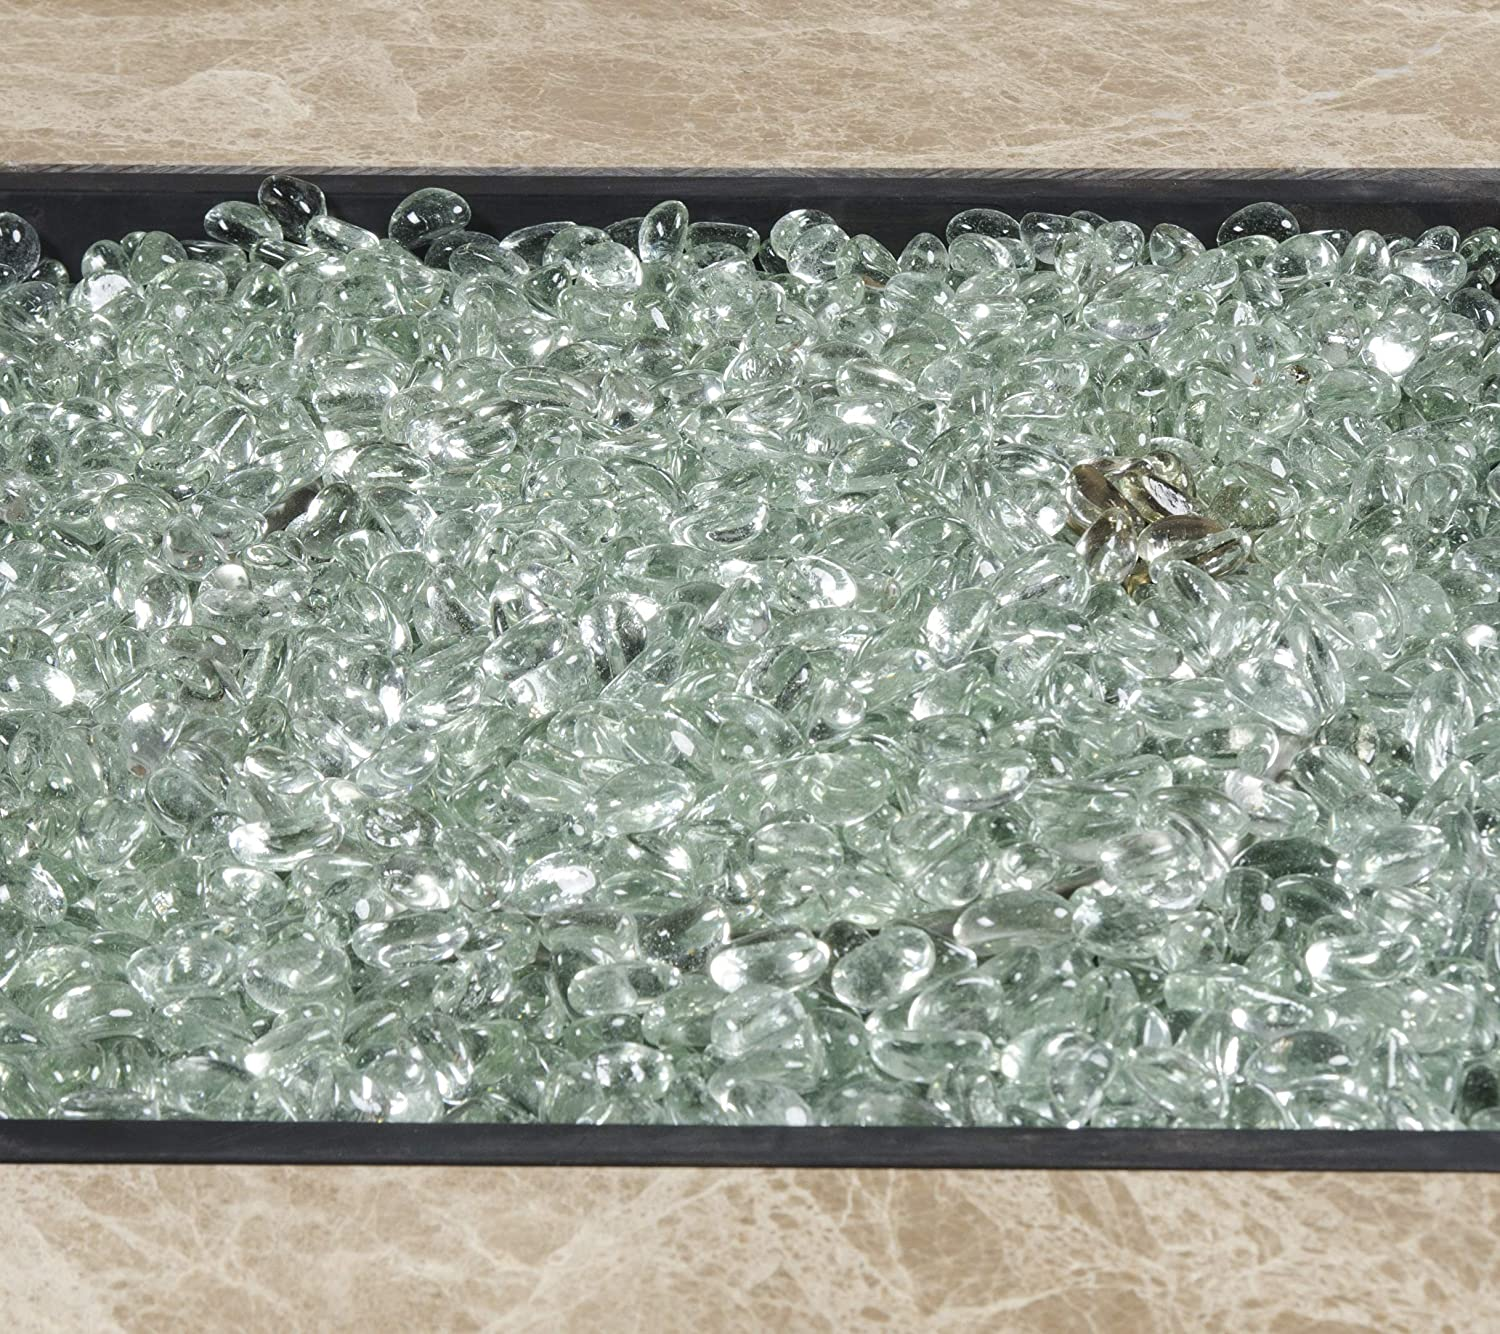 10lb LavaGlass Round Fire Pit Dispersion Glass Bond Manufacturing Amber Sunset 0.66-0.74 Inches